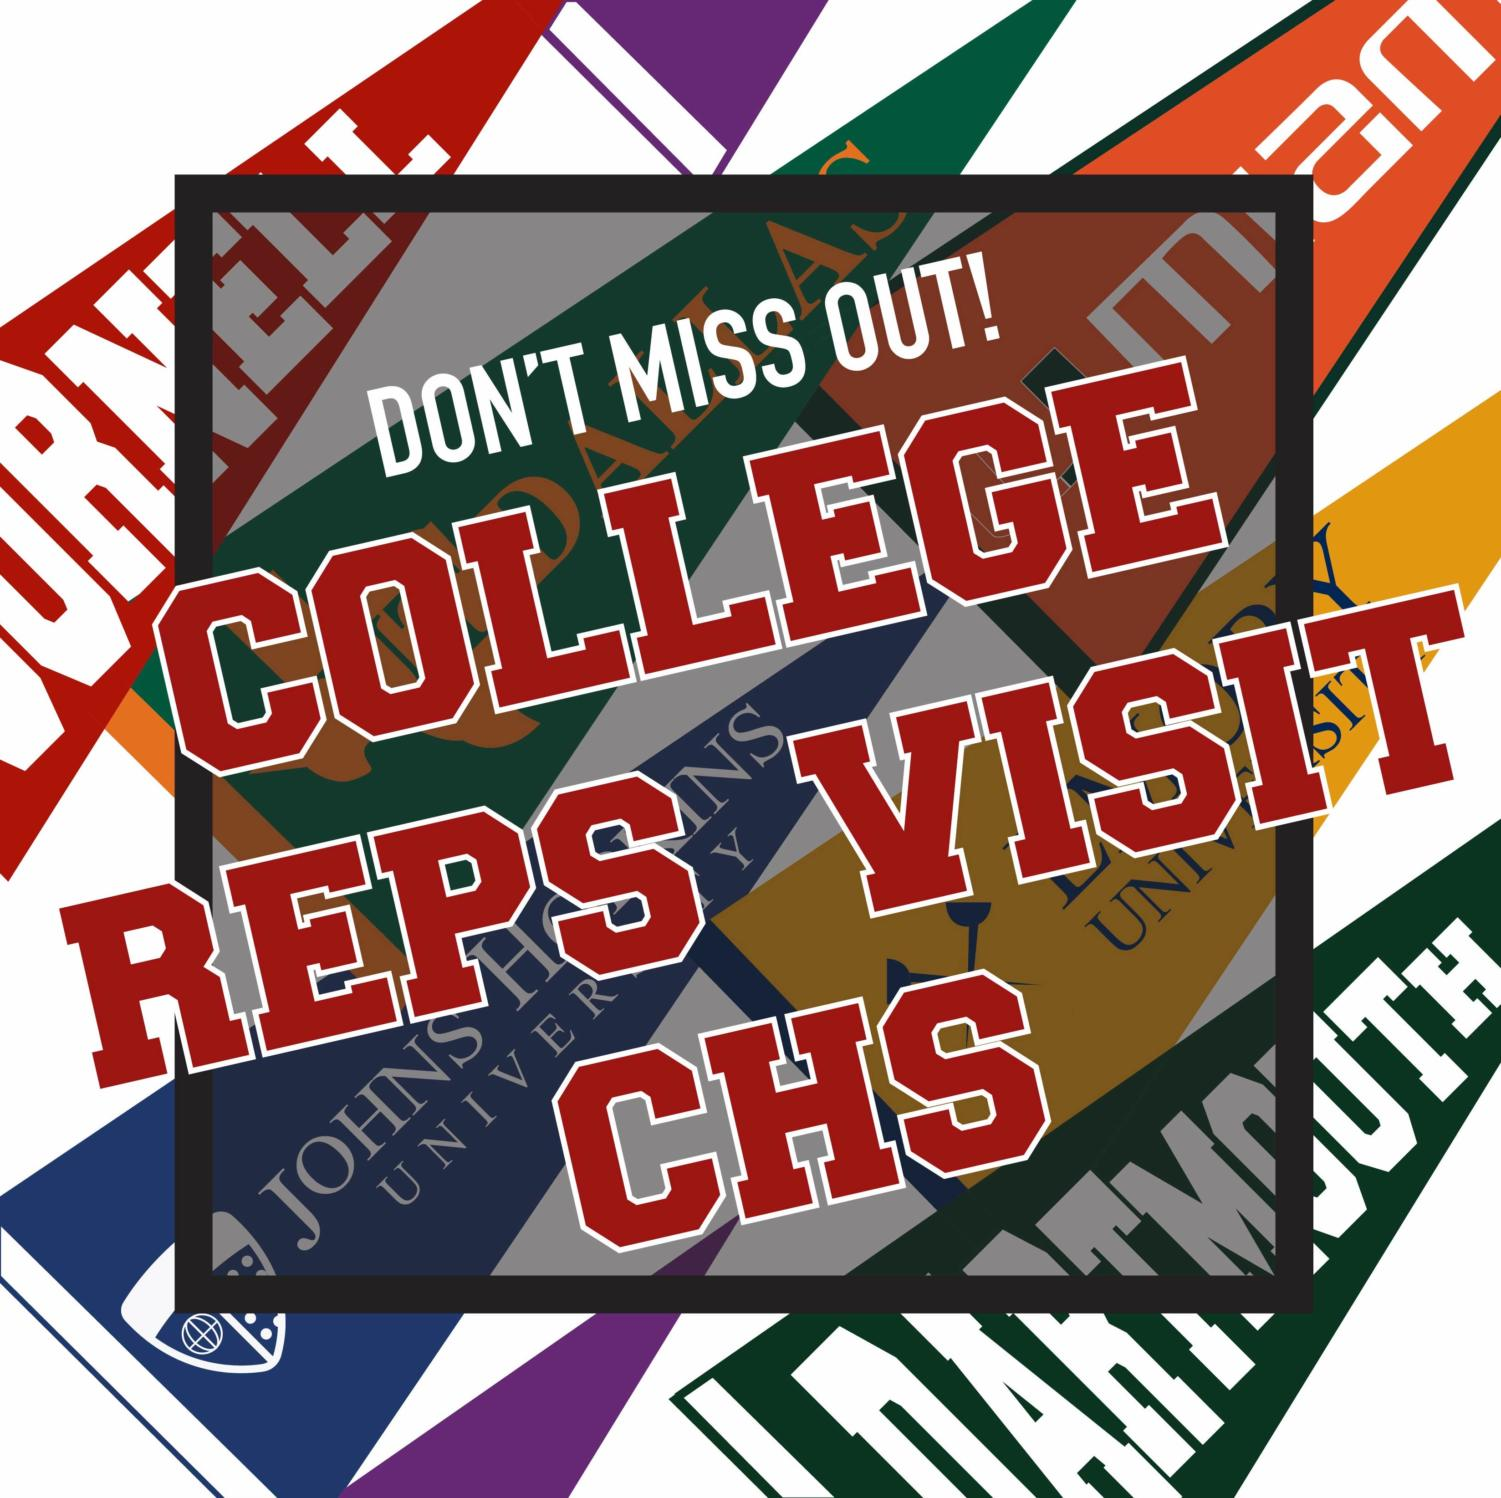 Throughout the year, various college representatives visit Coppell High School to help students decide which colleges to apply for to aid them in the essay writing process and more. Visit Naviance to see the full schedule and sign up for upcoming visits.